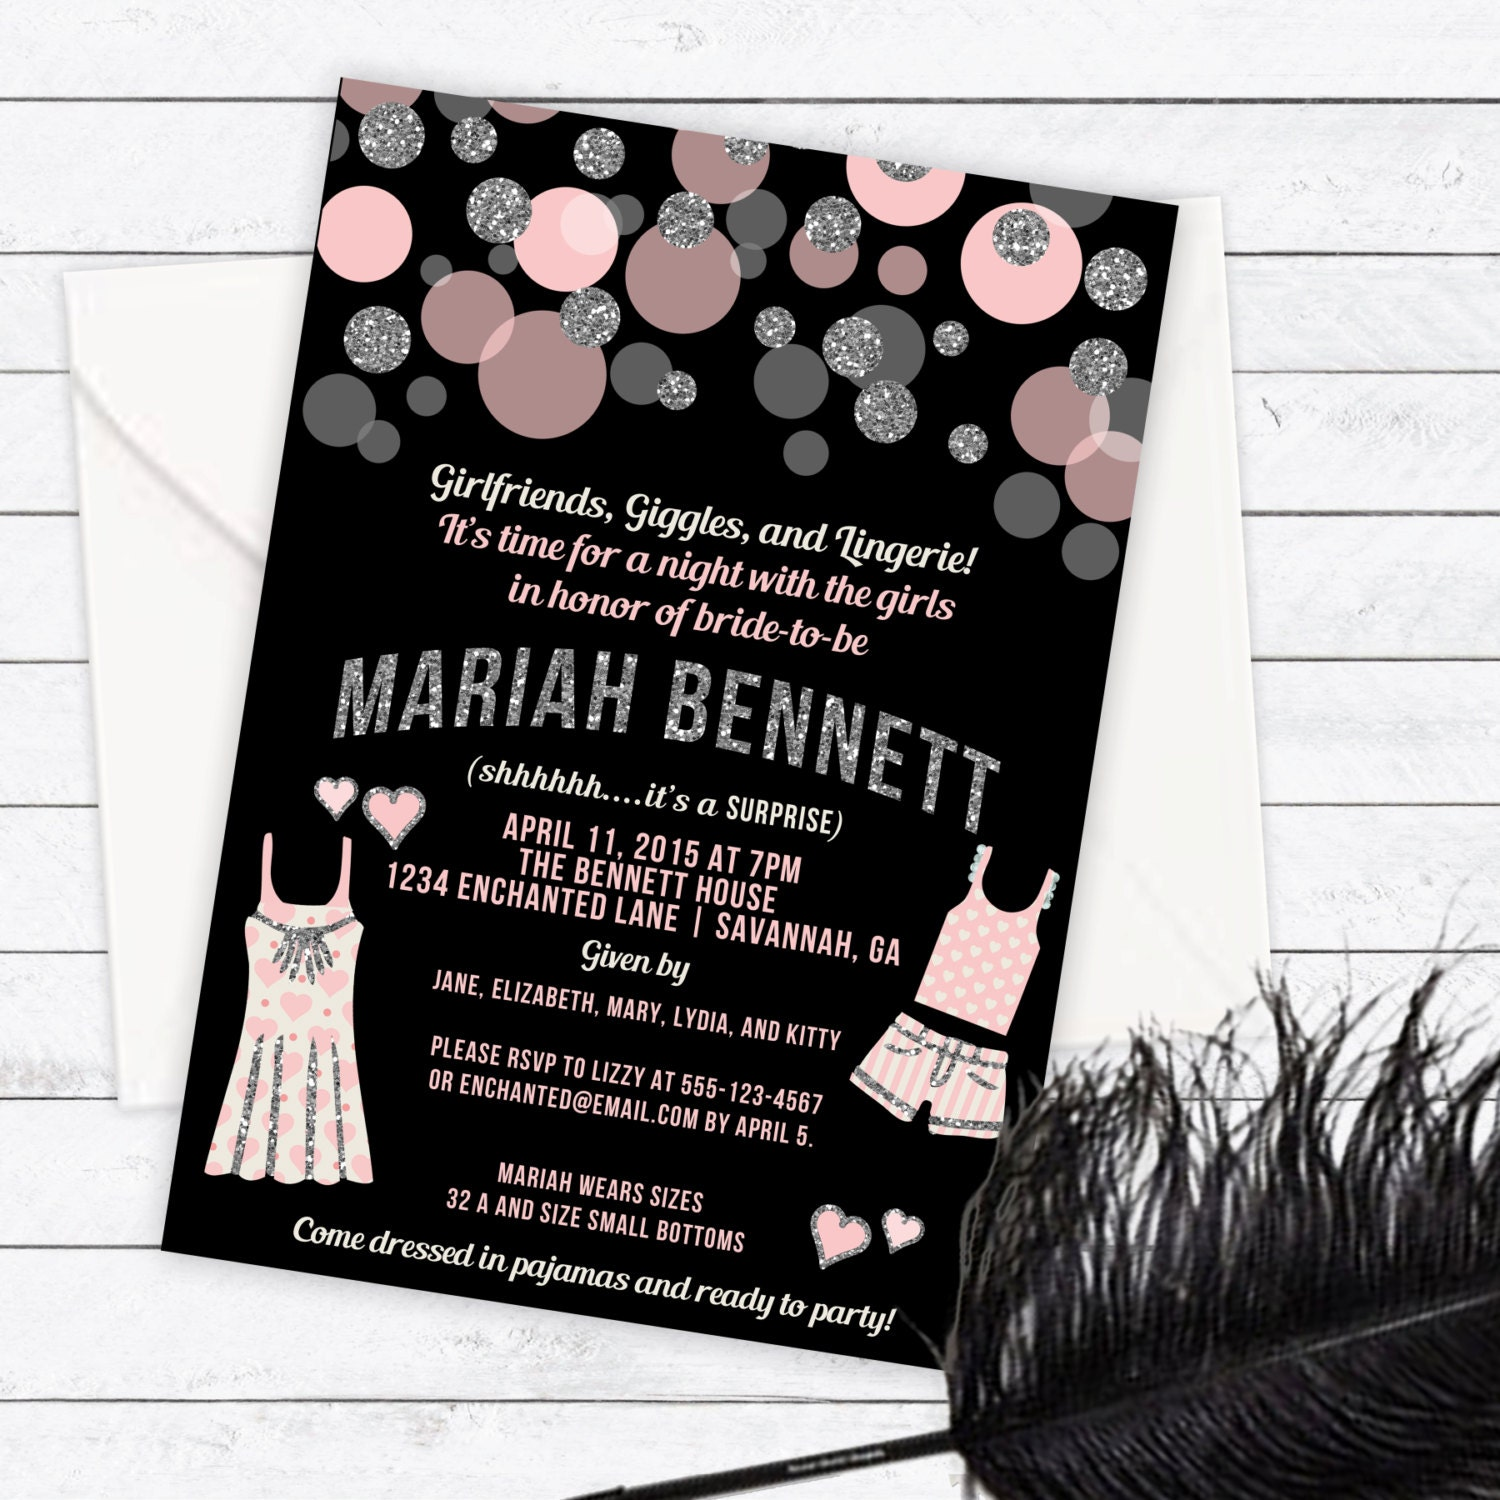 Pajama Party Lingerie Party Invitation PJ Party Linger – Lingerie Party Invite